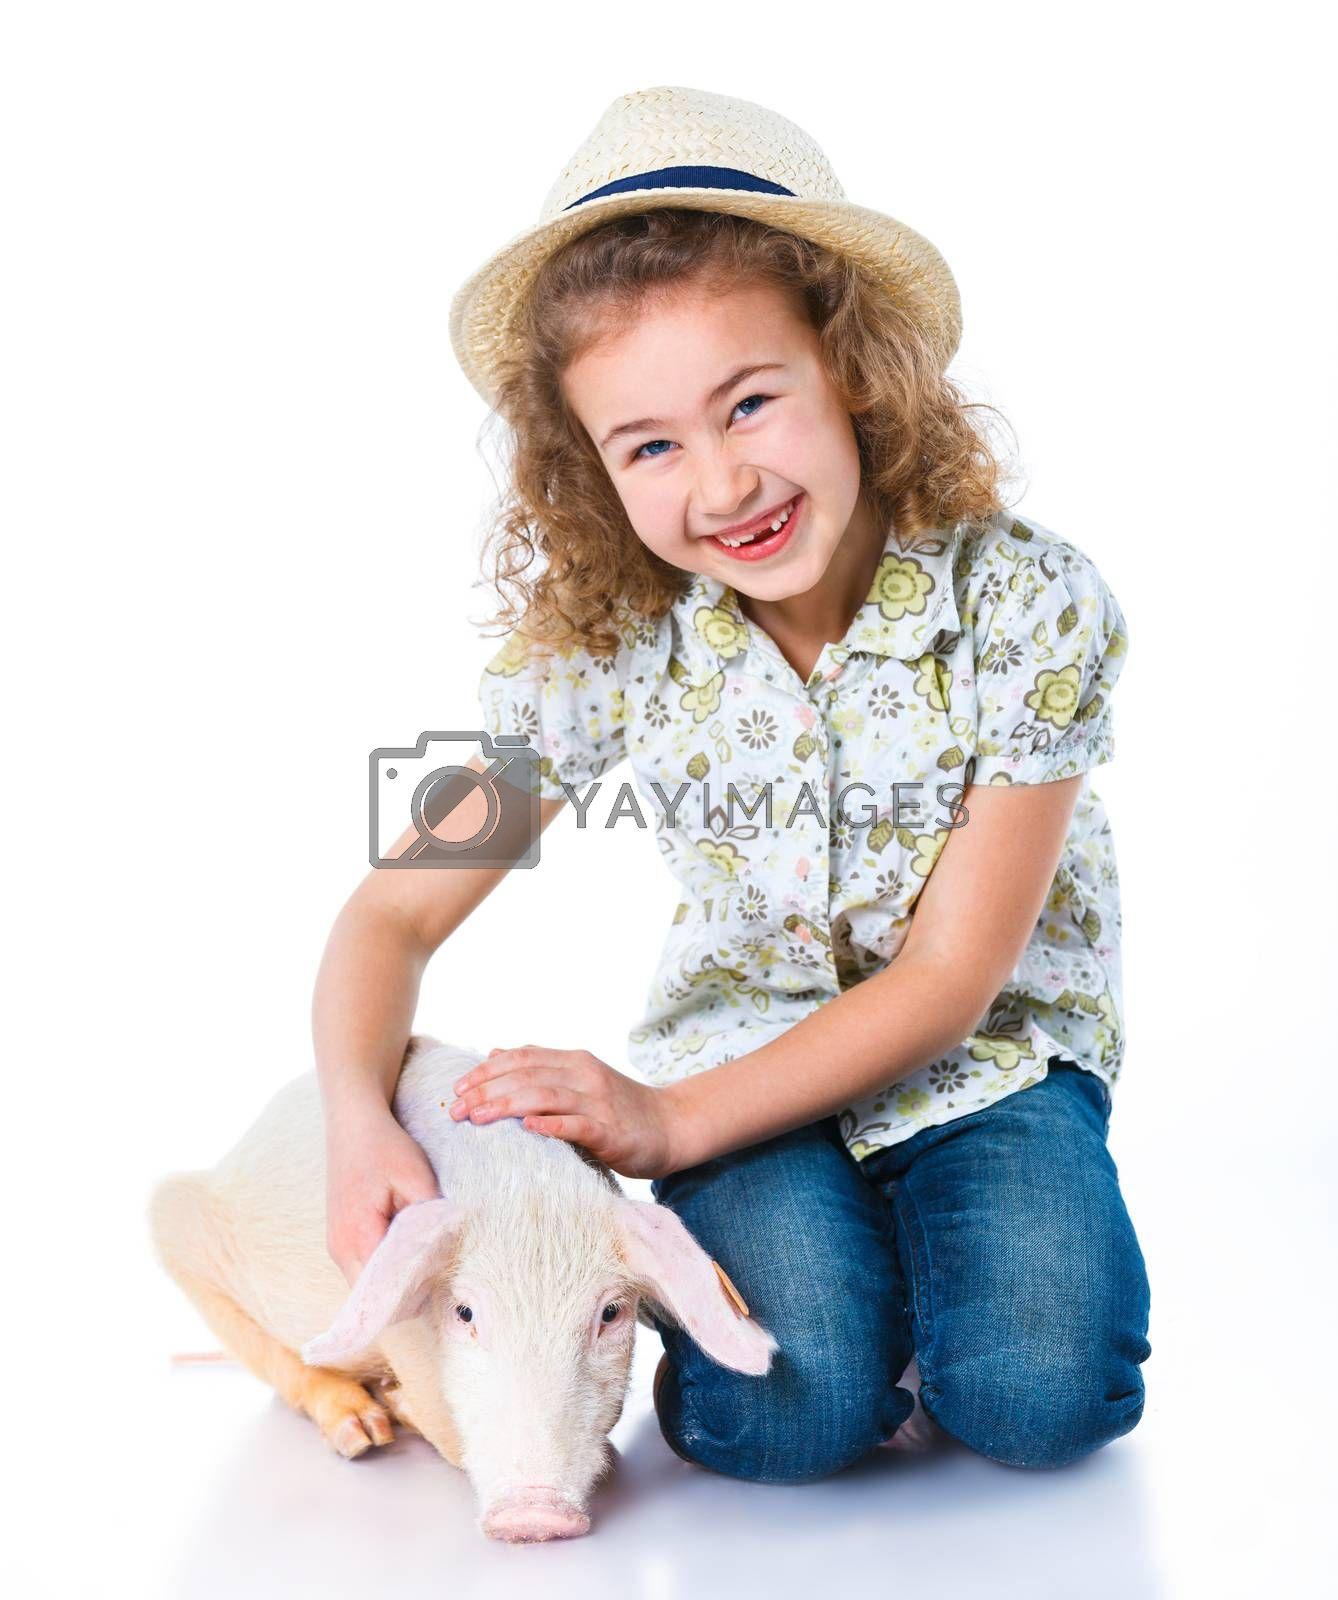 Royalty free image of Little farmer by maxoliki